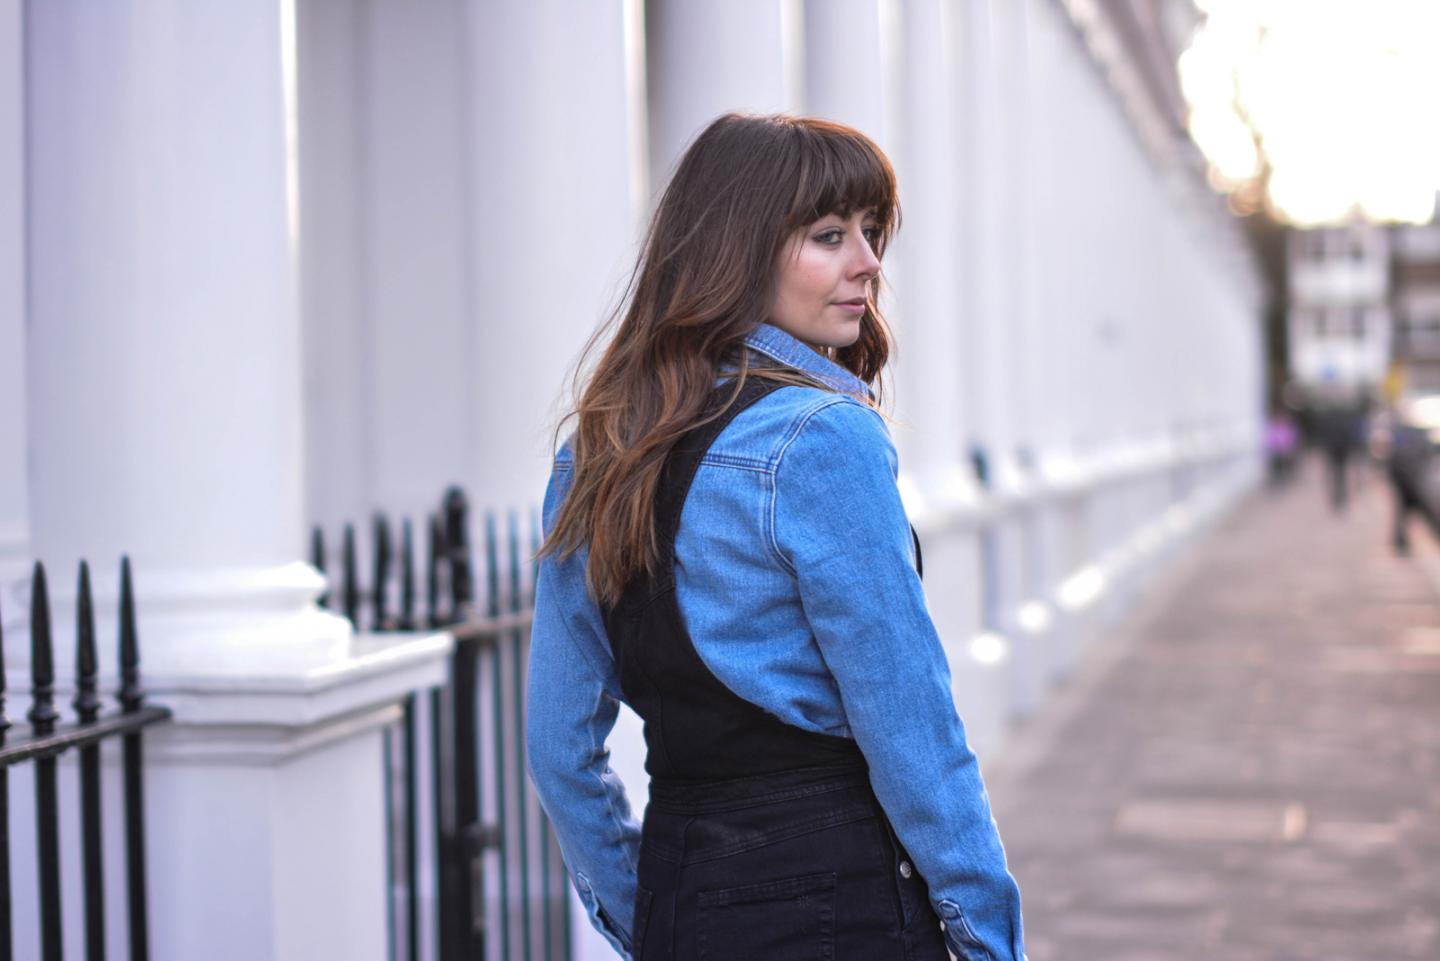 EJSTYLE - Emma Hill, fashion blogger, double denim, alexa chung x AG denim dungarees, Henry Holland denim shirt, house of holland denim shirt, denim trend, spring 2015, SS15